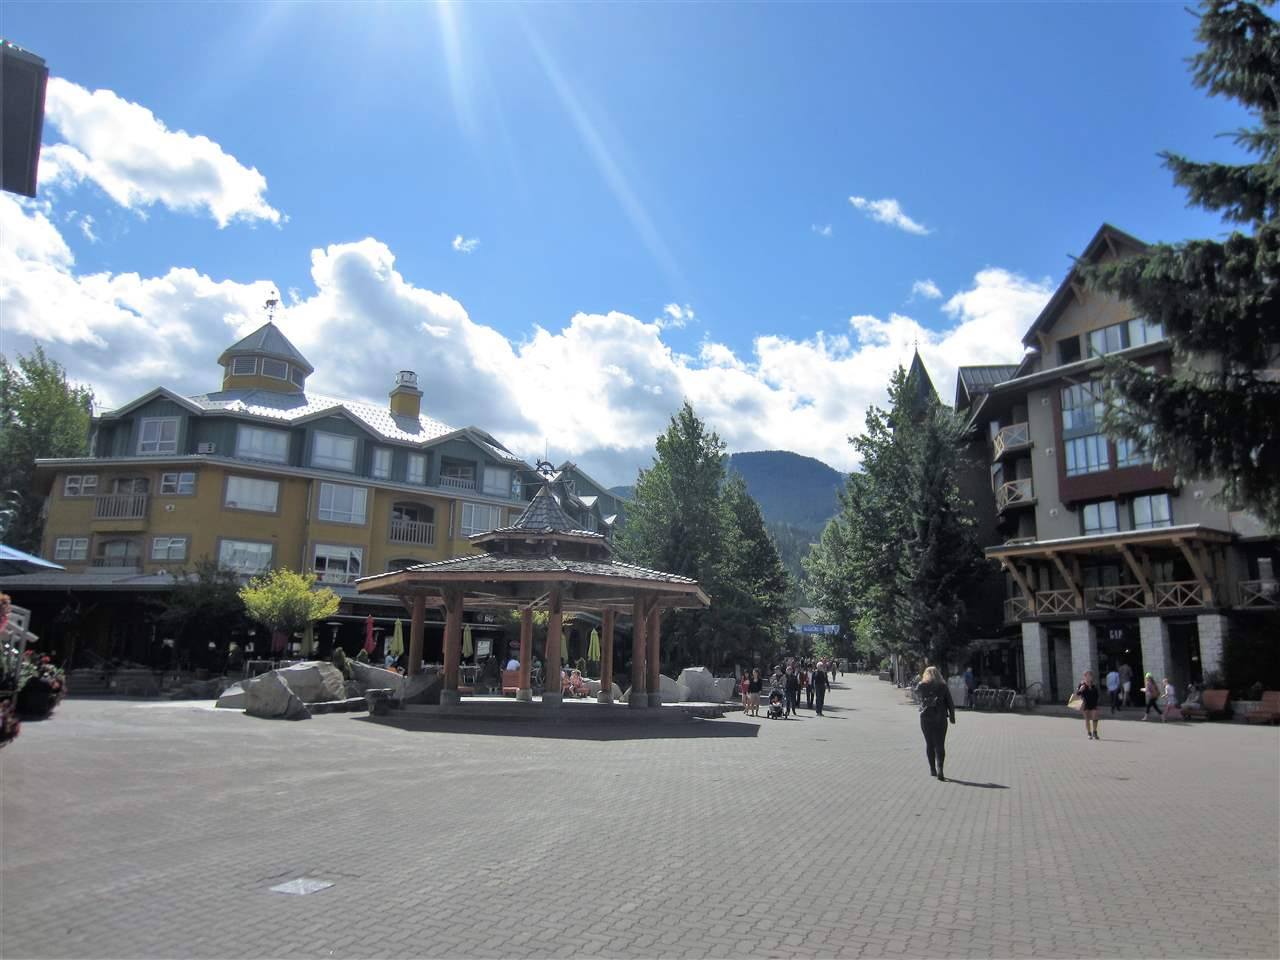 Condo Apartment at 310 4314 MAIN STREET, Unit 310, Whistler, British Columbia. Image 1